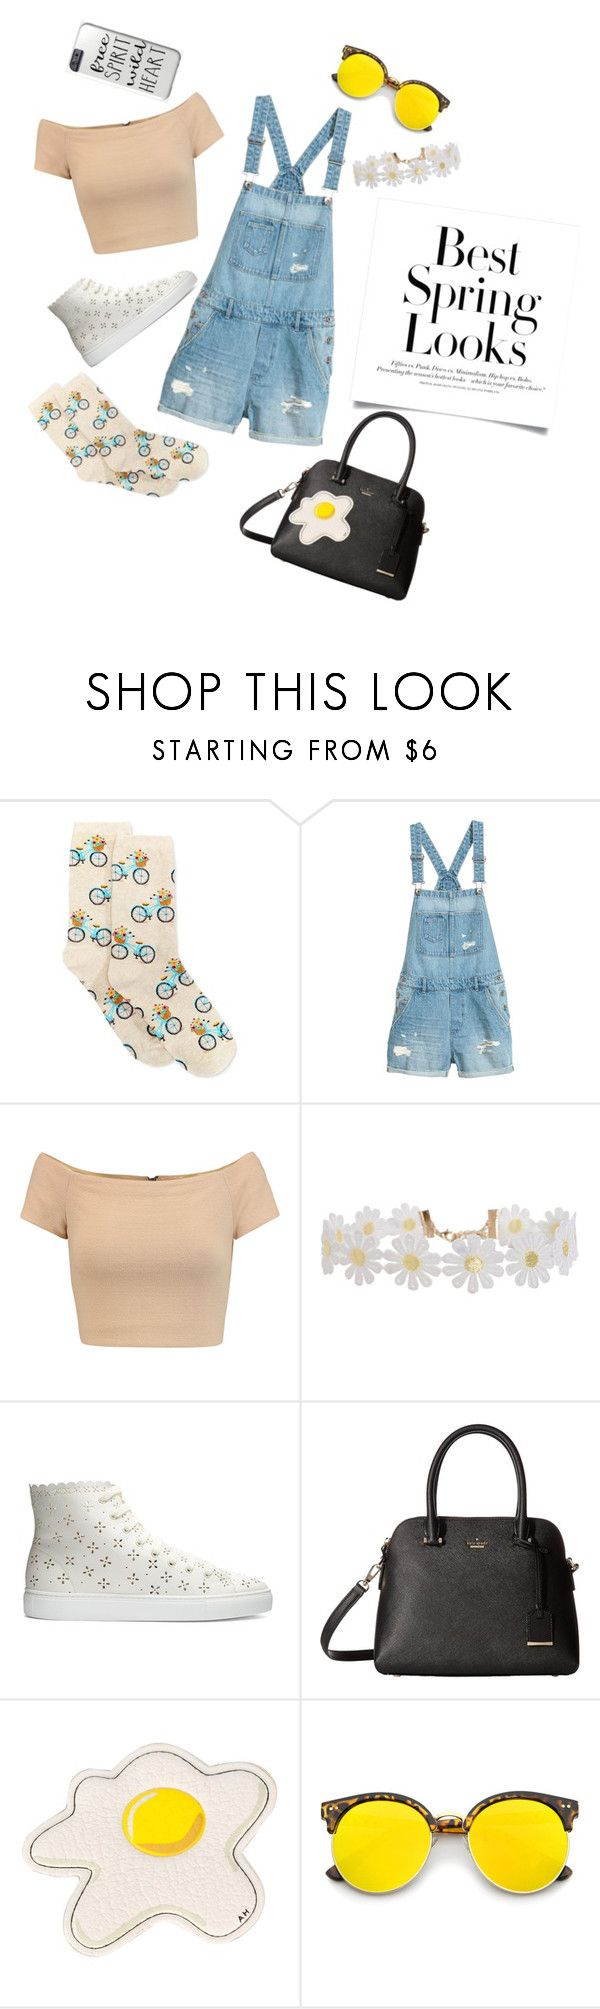 """Best Spring Looks #1"" by elliskhanby on Polyvore featuring HOT SOX, Alice + Olivia, Humble Chic, H&M, Simone Rocha, Kate Spade, Anya Hindmarch and ZeroUV"